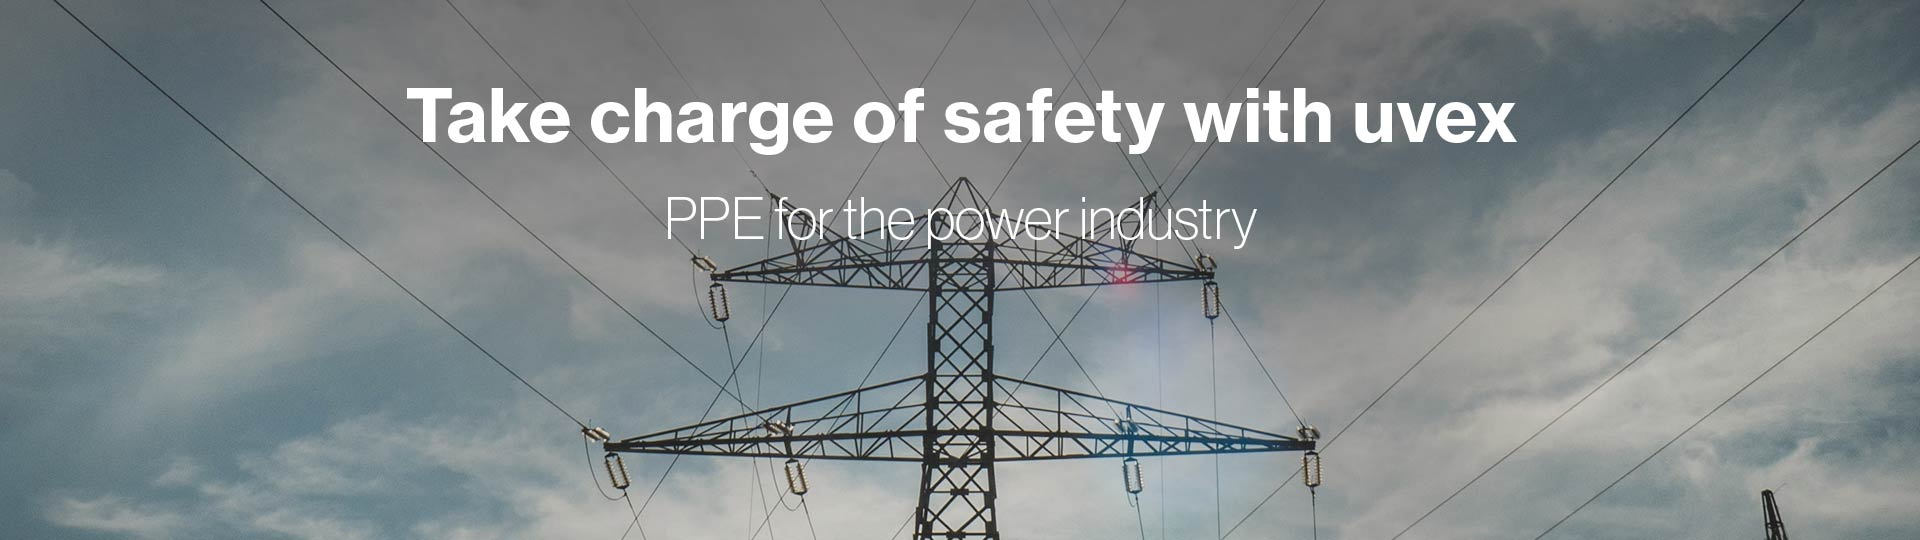 PPE perfectly suited to power industry